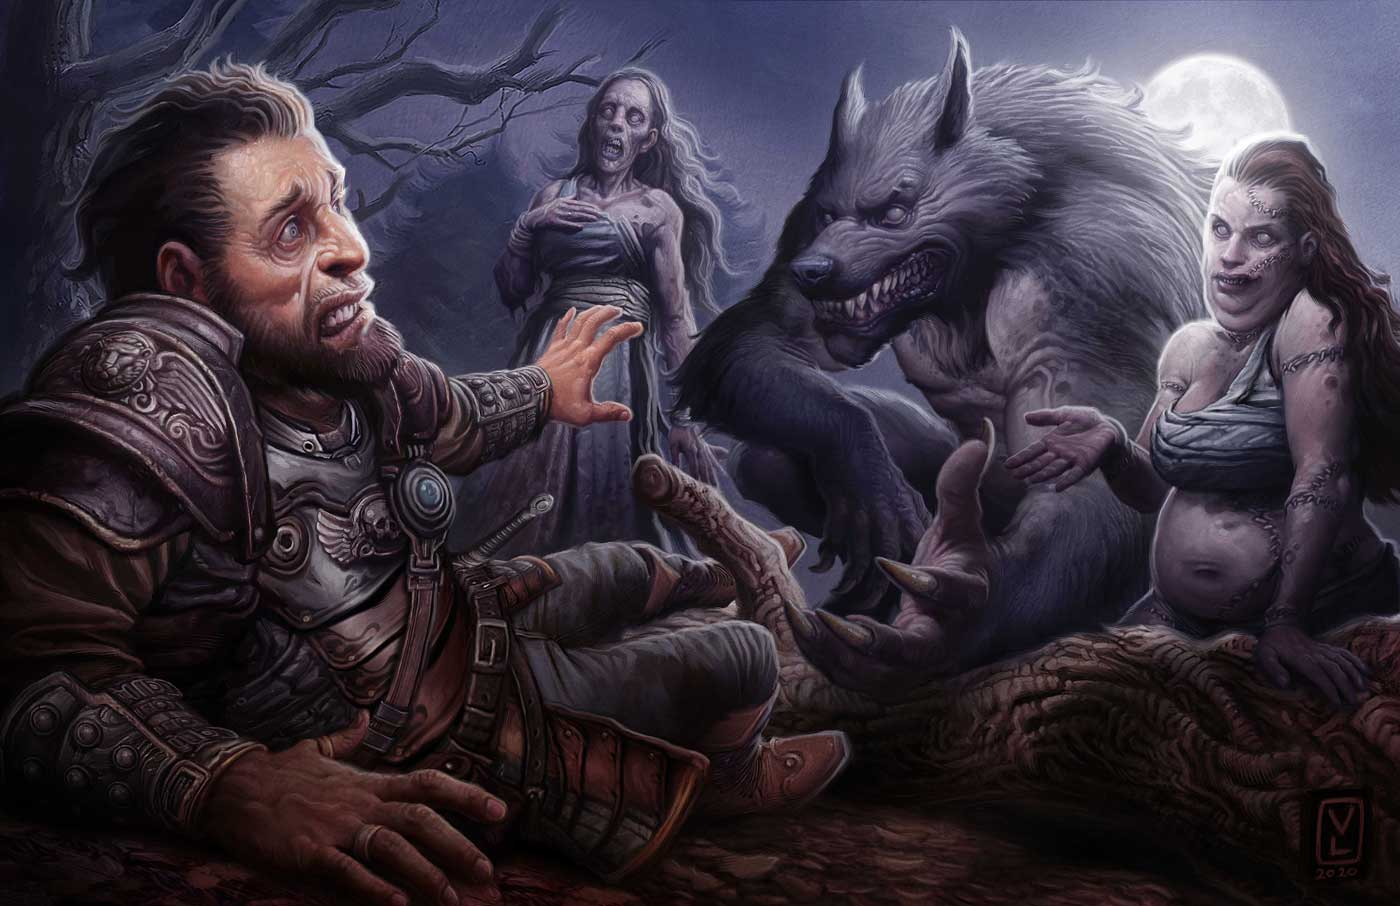 Illustration by Victor Manuel Leza Moreno from Pathfinder Lost Omens Ancestry Guide.; alt: a gray-furred wold-man, a woman with a patchwork of stitched skin, and a walking desiccated corpse loom over a frightened man under a creepy full moon.